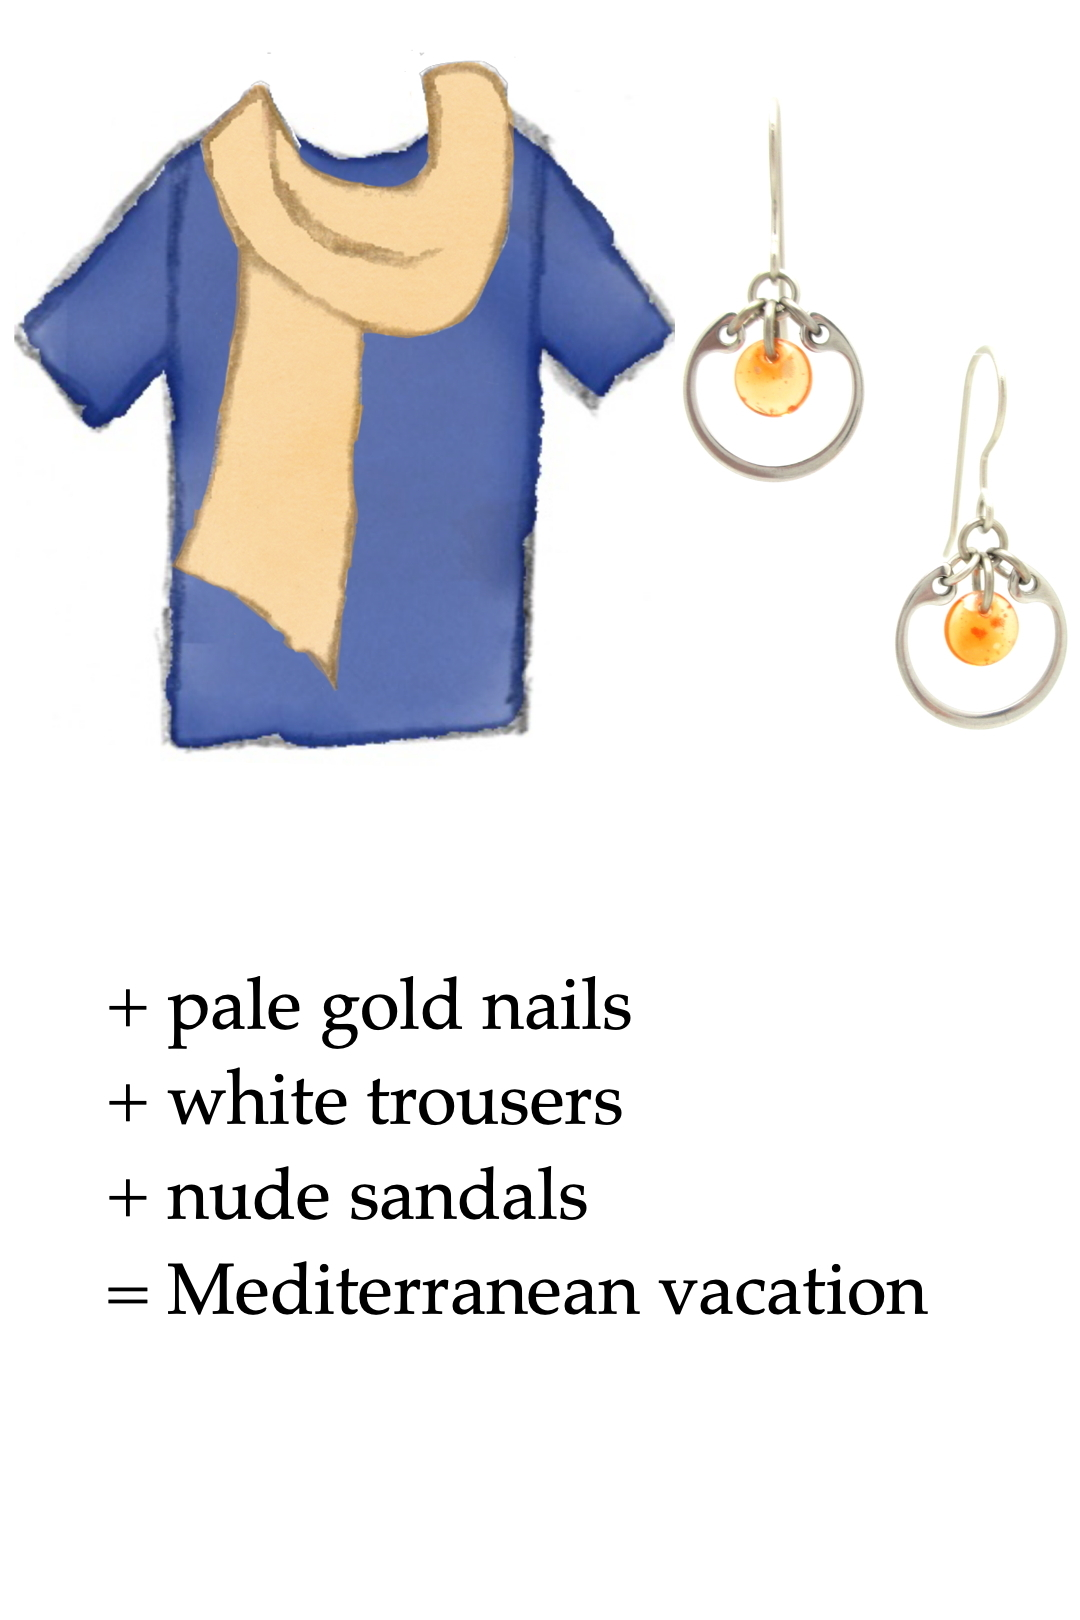 style sketch of a blue tee + light orange scarf with tangerine orange and silver-tone modern circle earrings by wraptillion; text on image reads + pale gold nails + white trousers + nude sandals = Mediterranean vacation